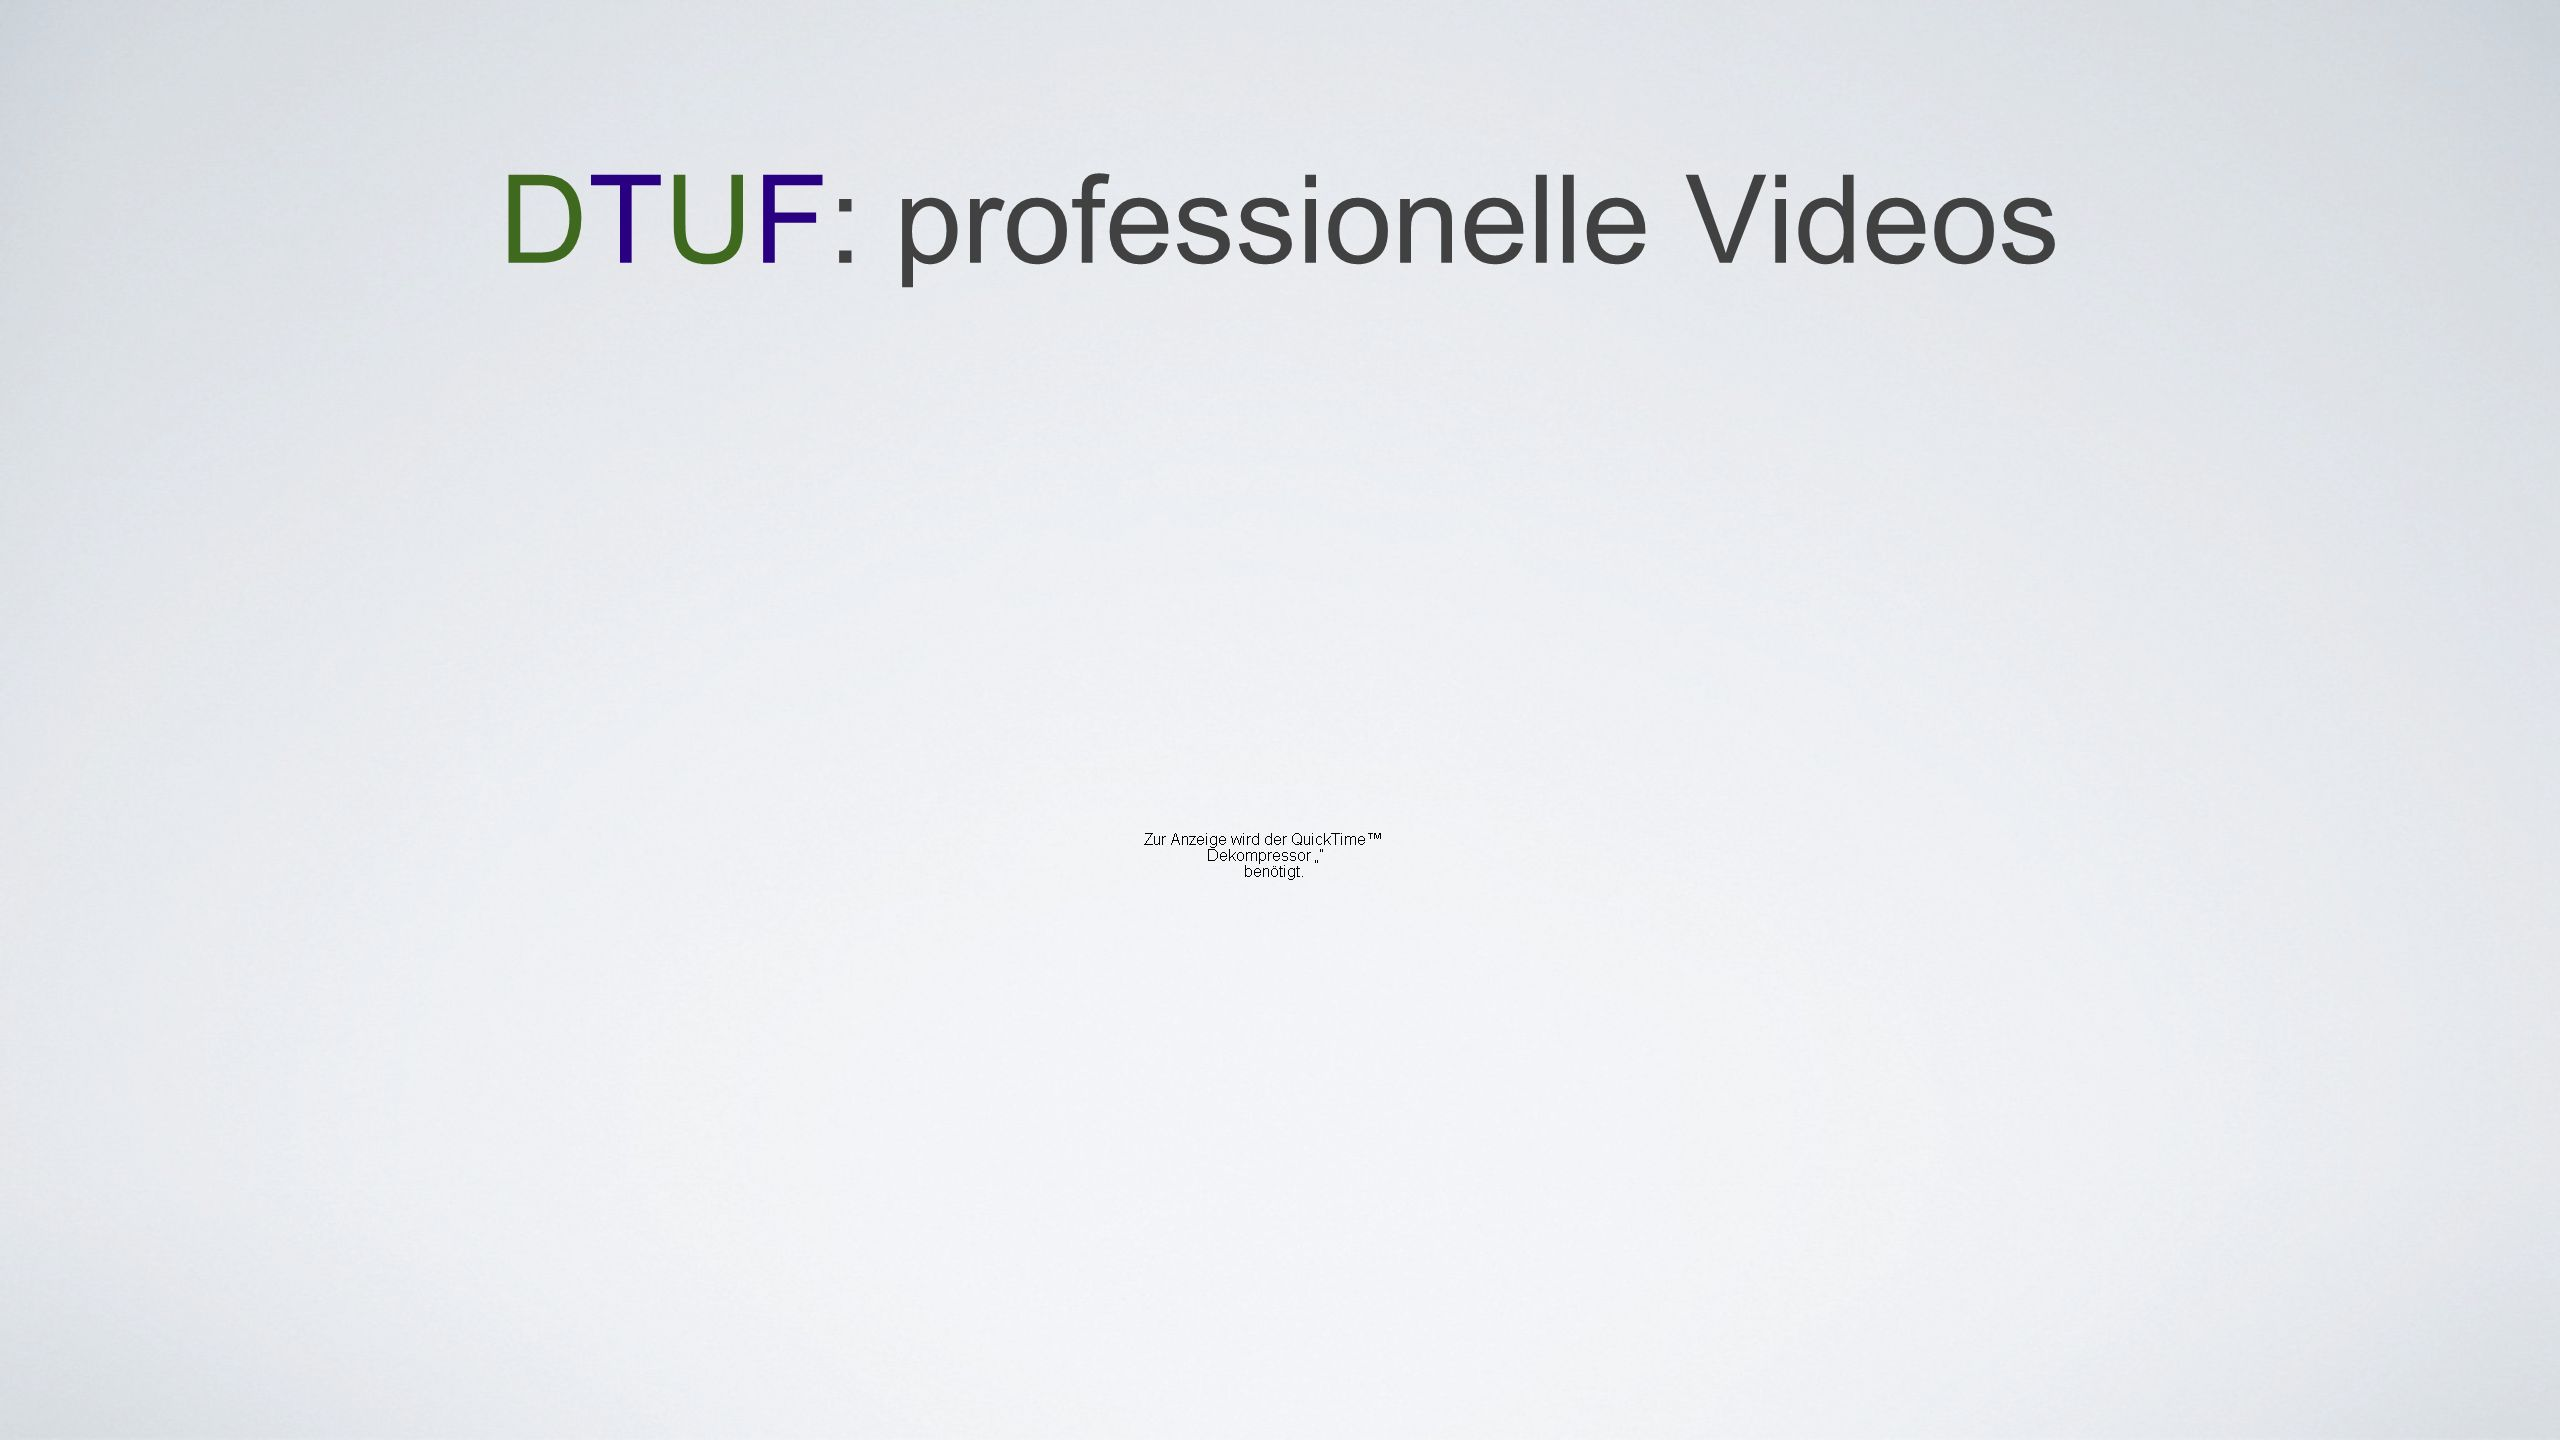 DTUF: professionelle Videos